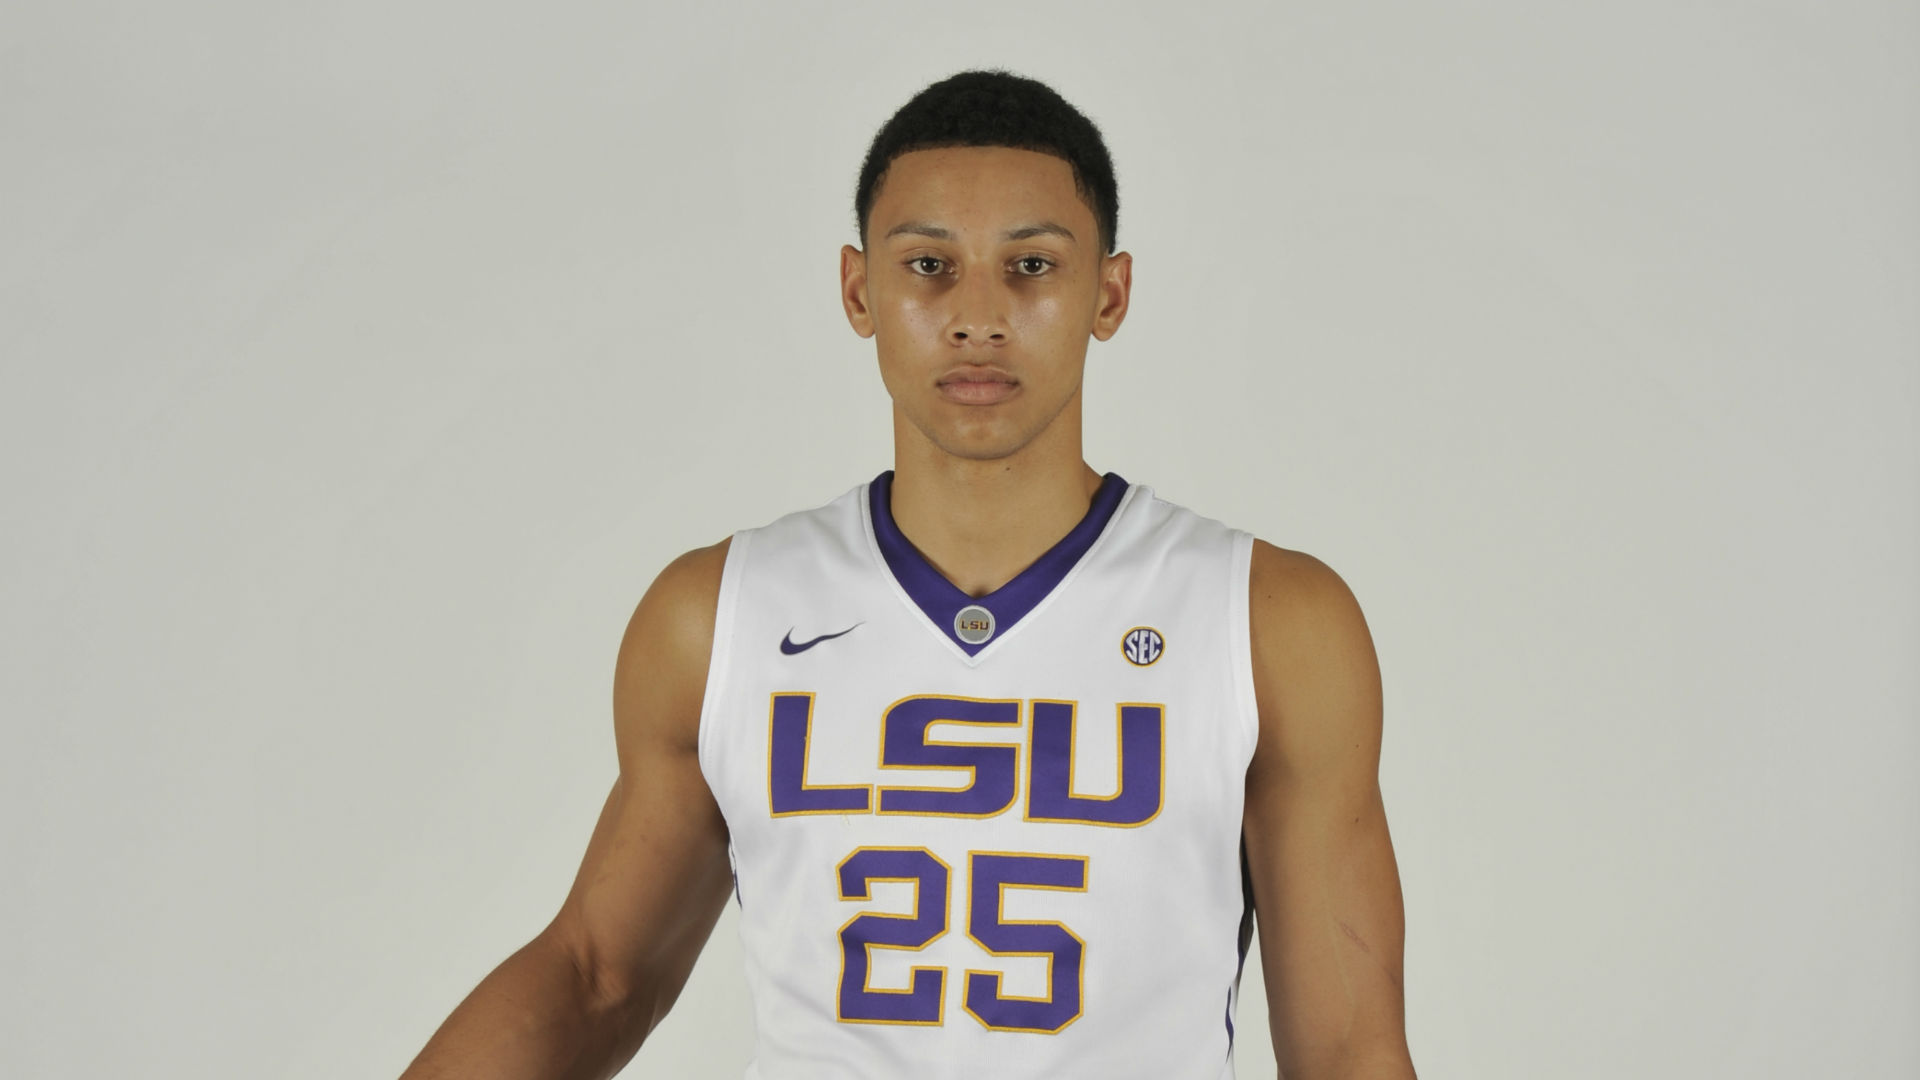 ben simmons - photo #33